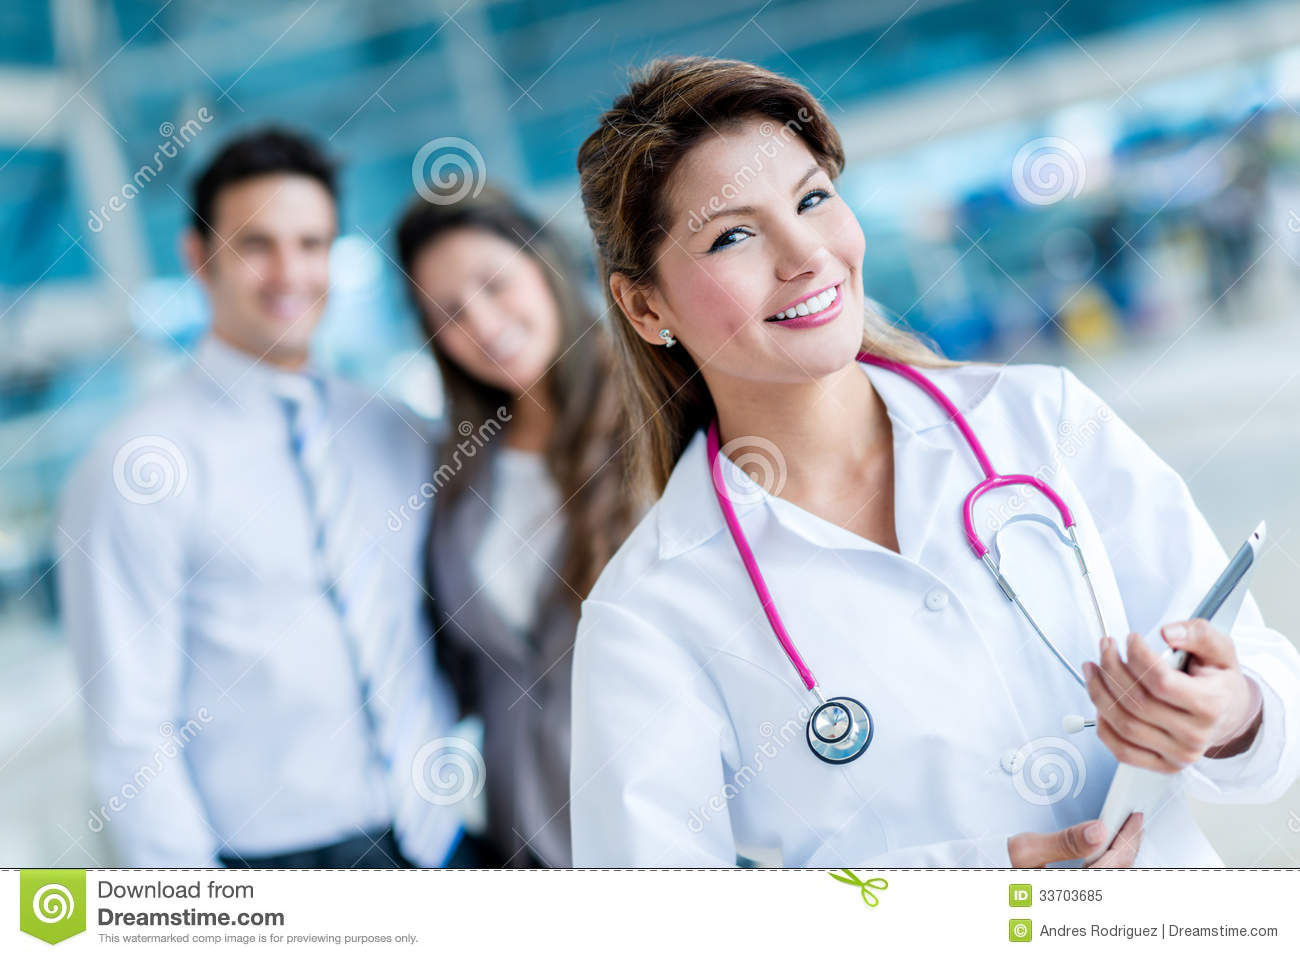 Family doctor stock image. Image of happy, coat, people ...